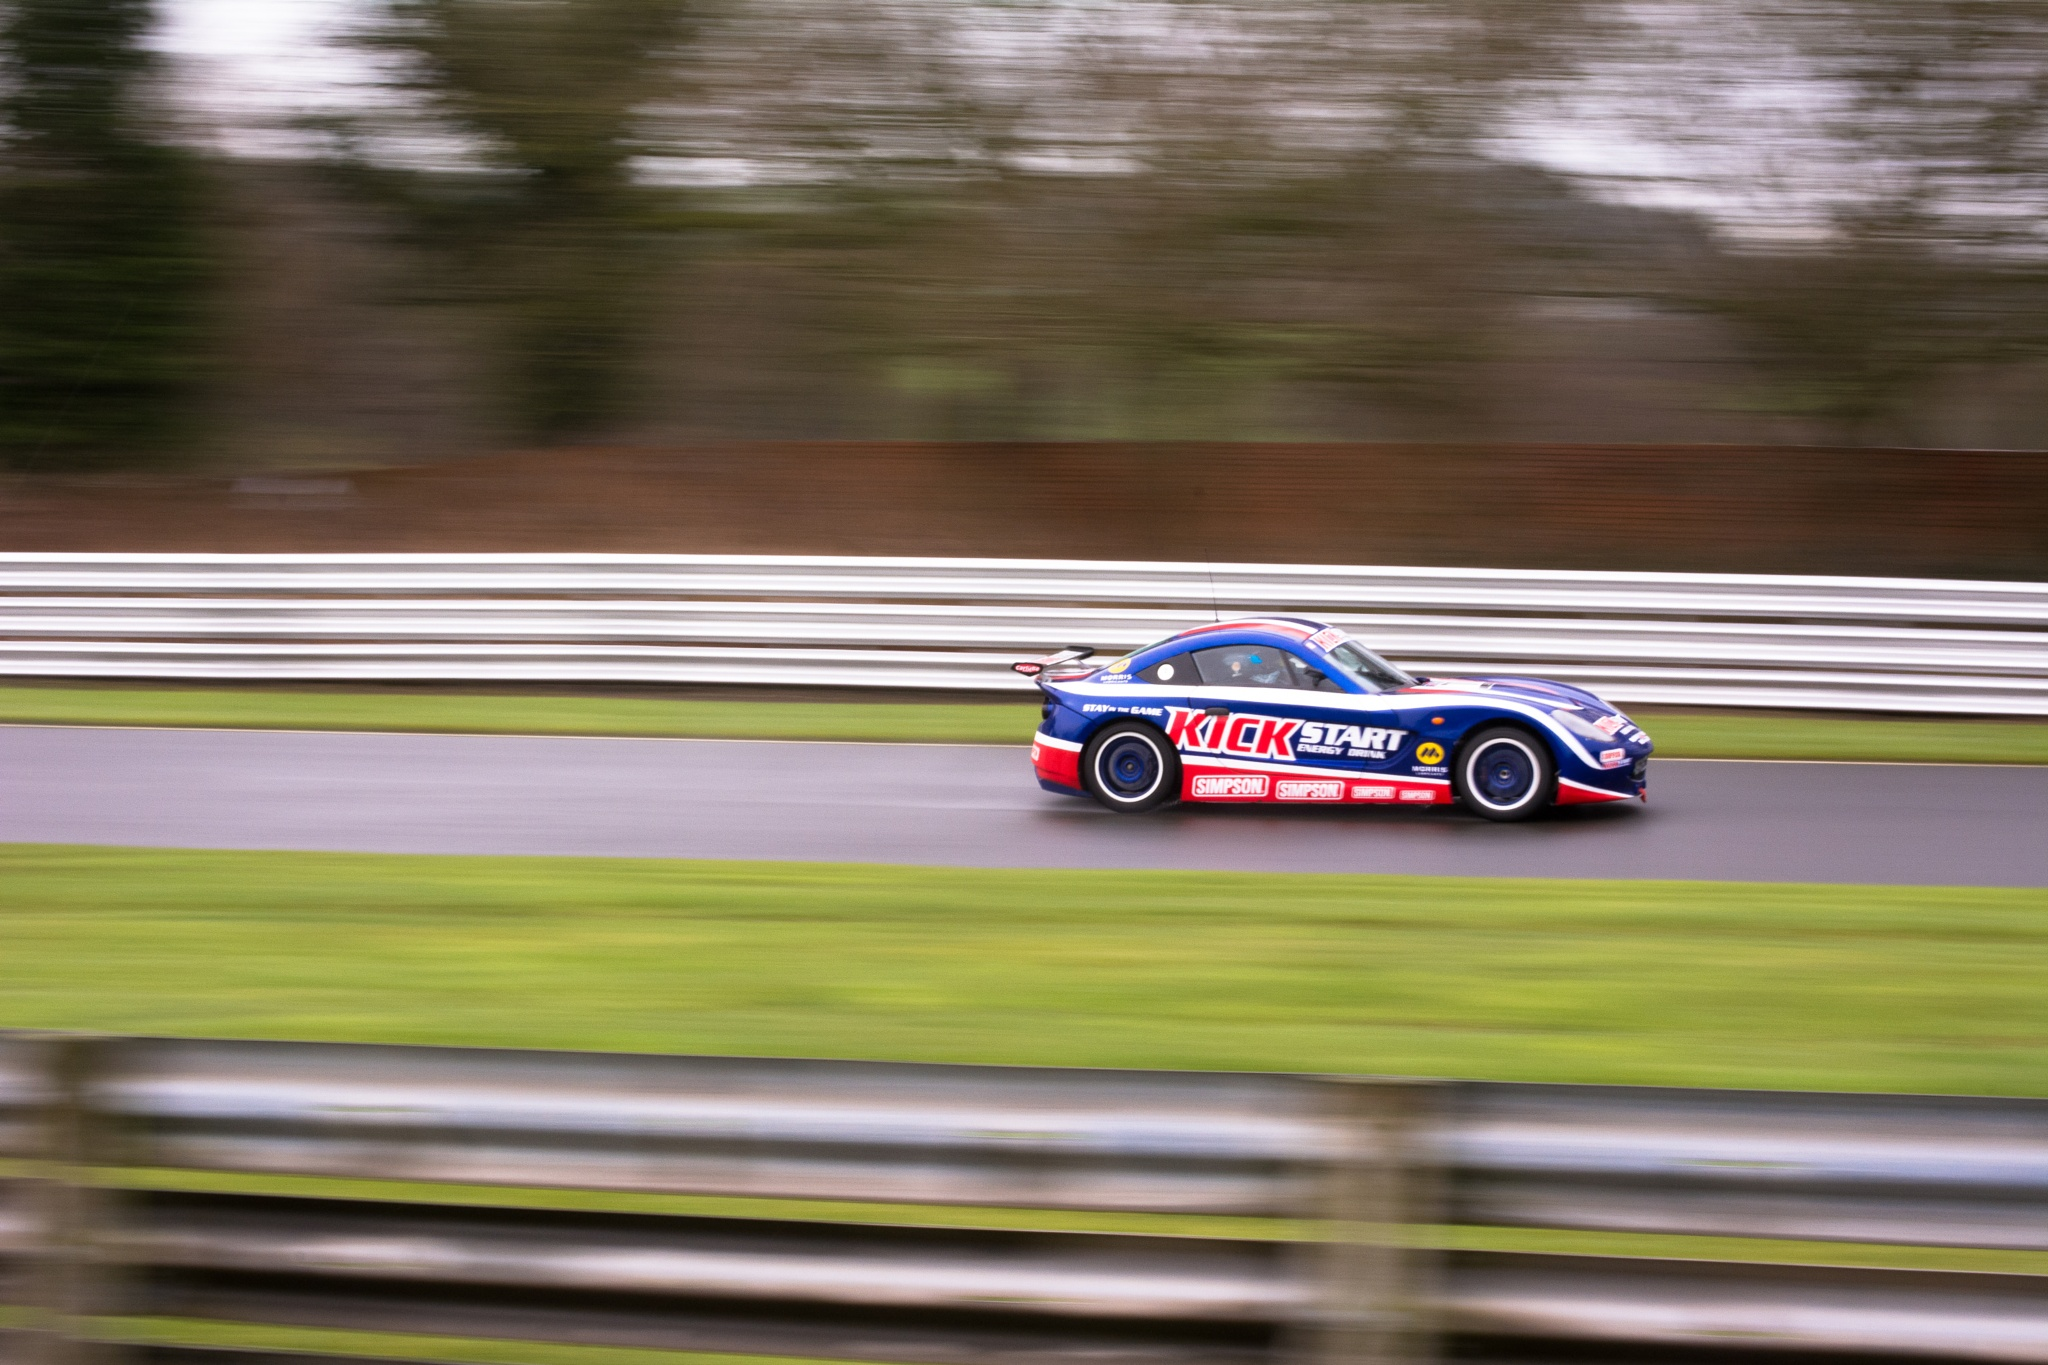 Oulton Park  by Johnrutherford84